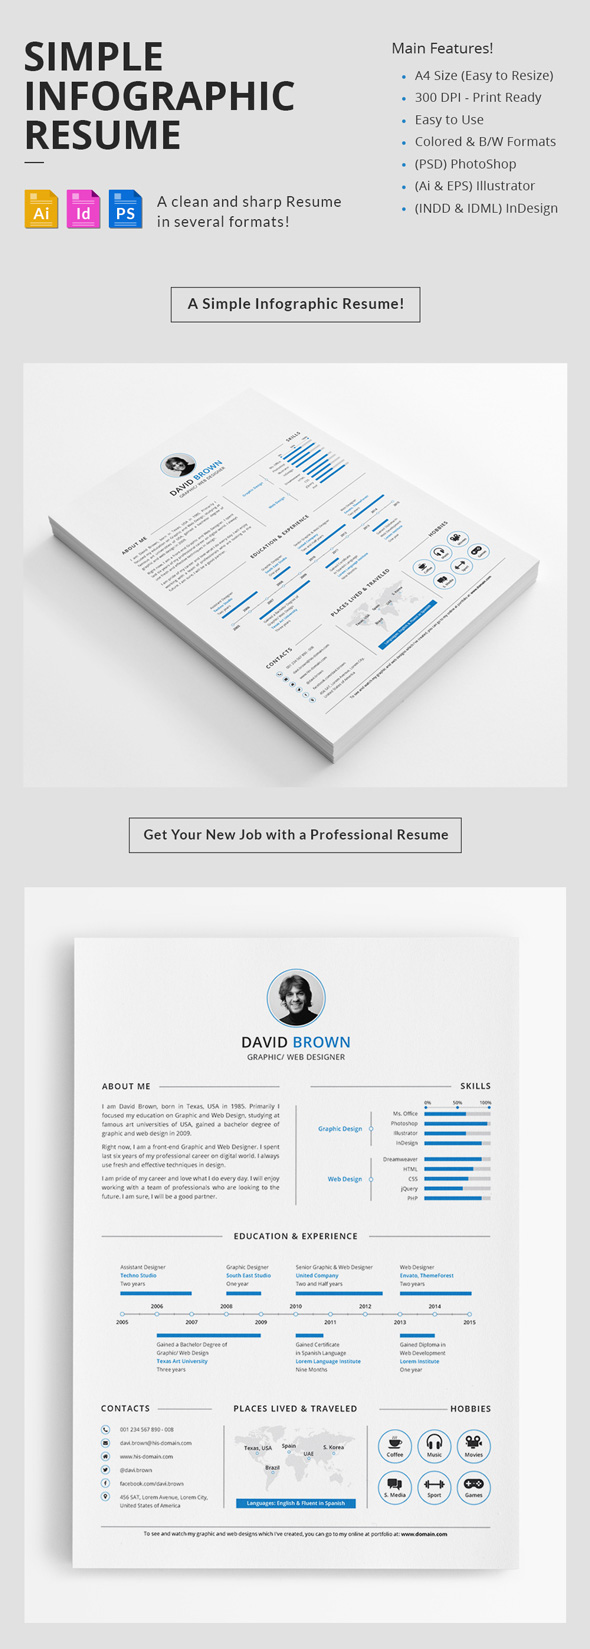 18 creative infographic resume templates for 2018 minimal resume template design flashek